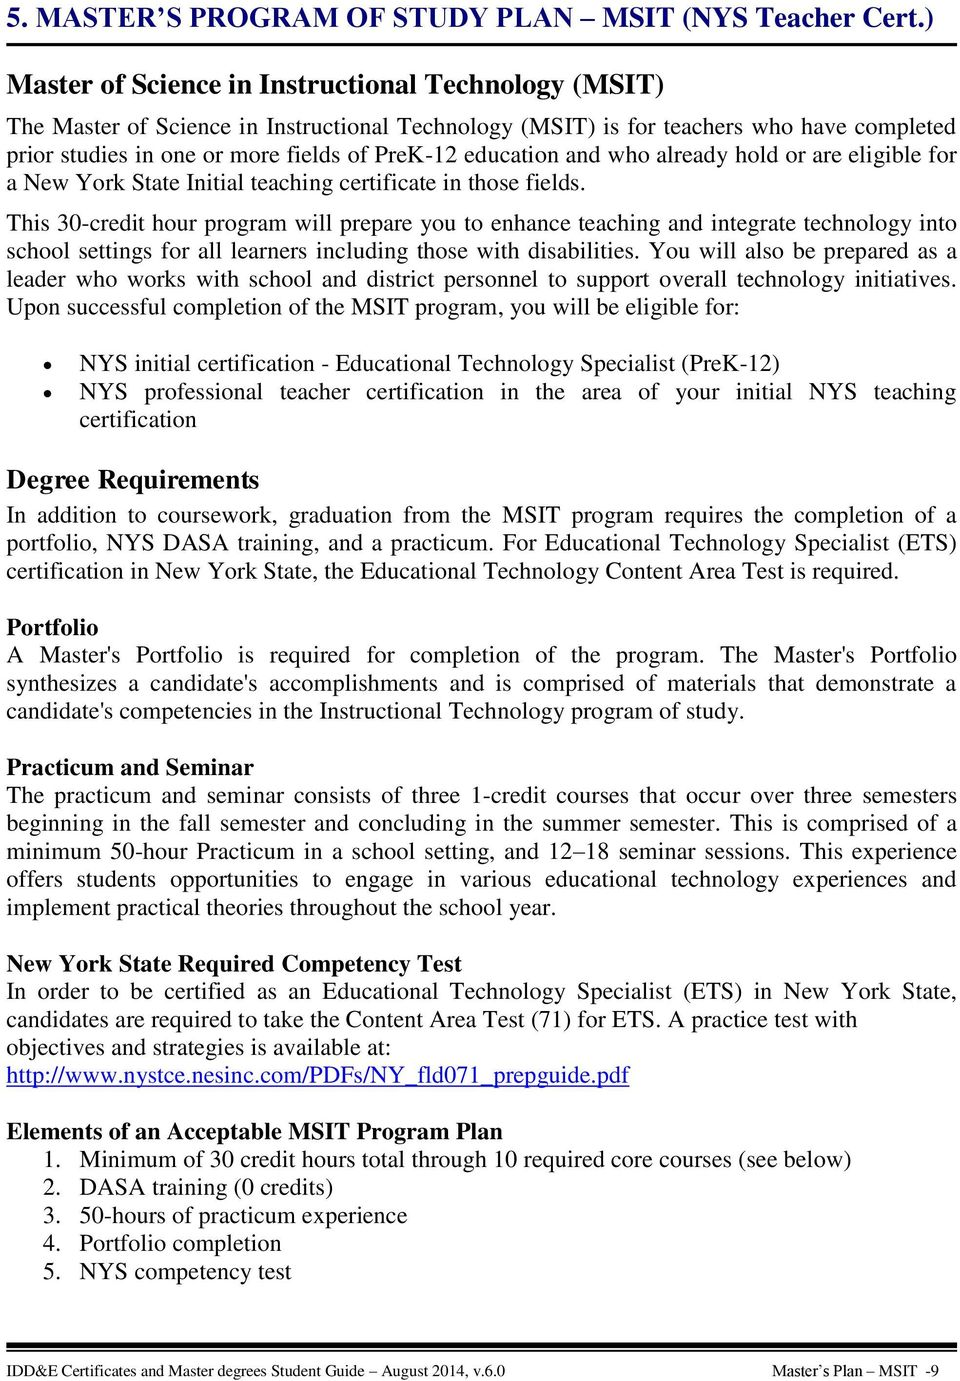 education and who already hold or are eligible for a New York State Initial teaching certificate in those fields.